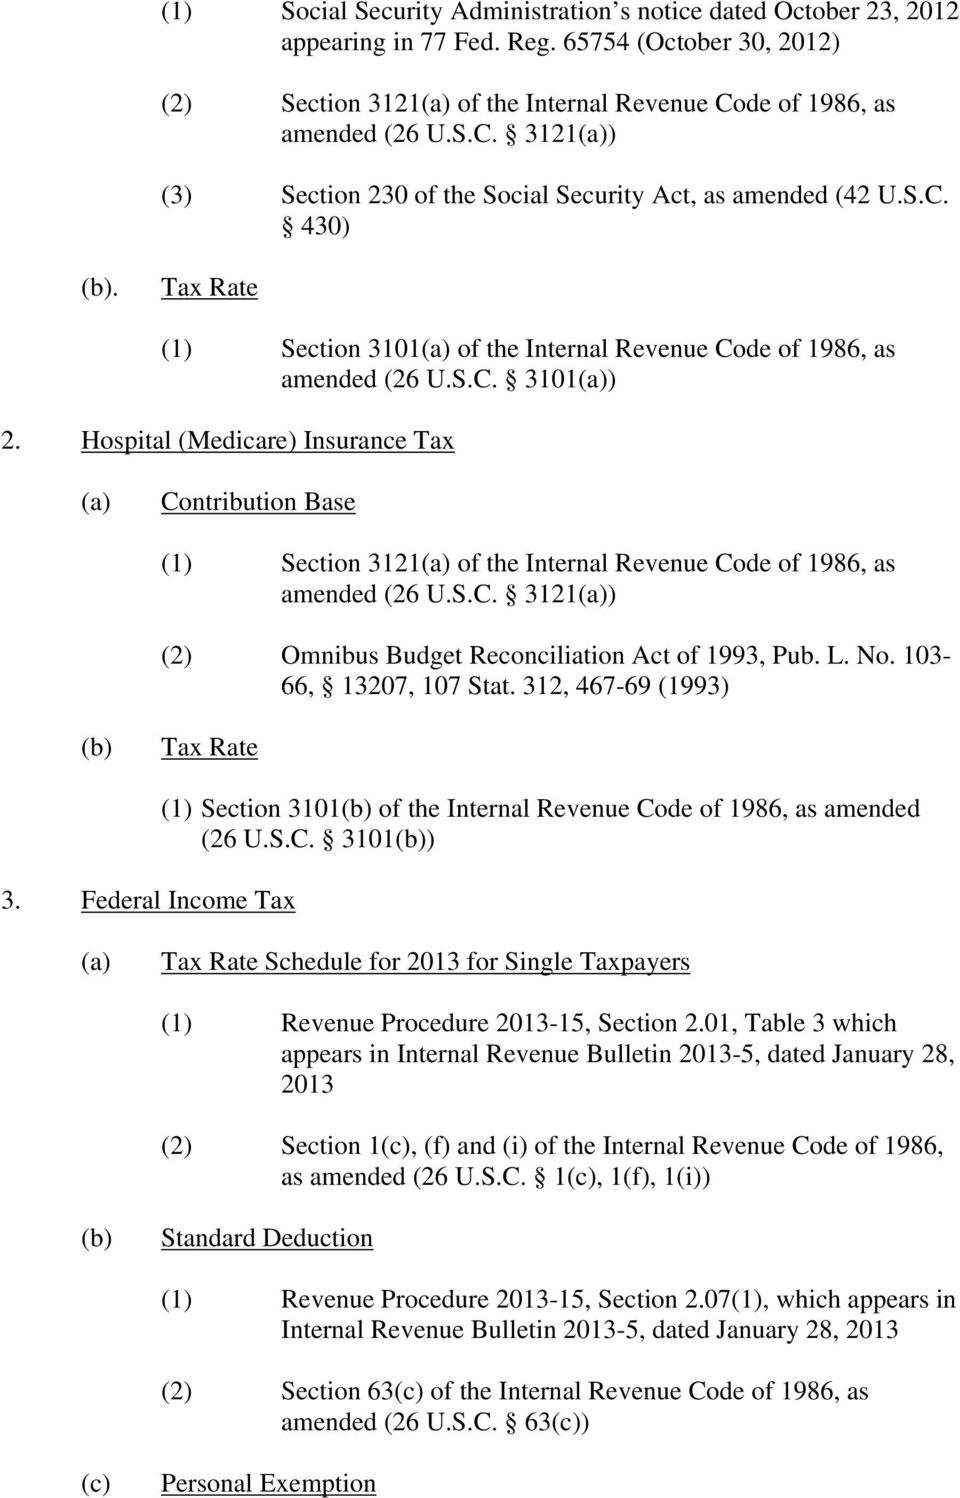 Hospital (Medicare) Insurance Tax Contribution Base (1) Section 3121 of the Internal Revenue Code of 1986, as amended (26 U.S.C. 3121) (2) Omnibus Budget Reconciliation Act of 1993, Pub. L. No.